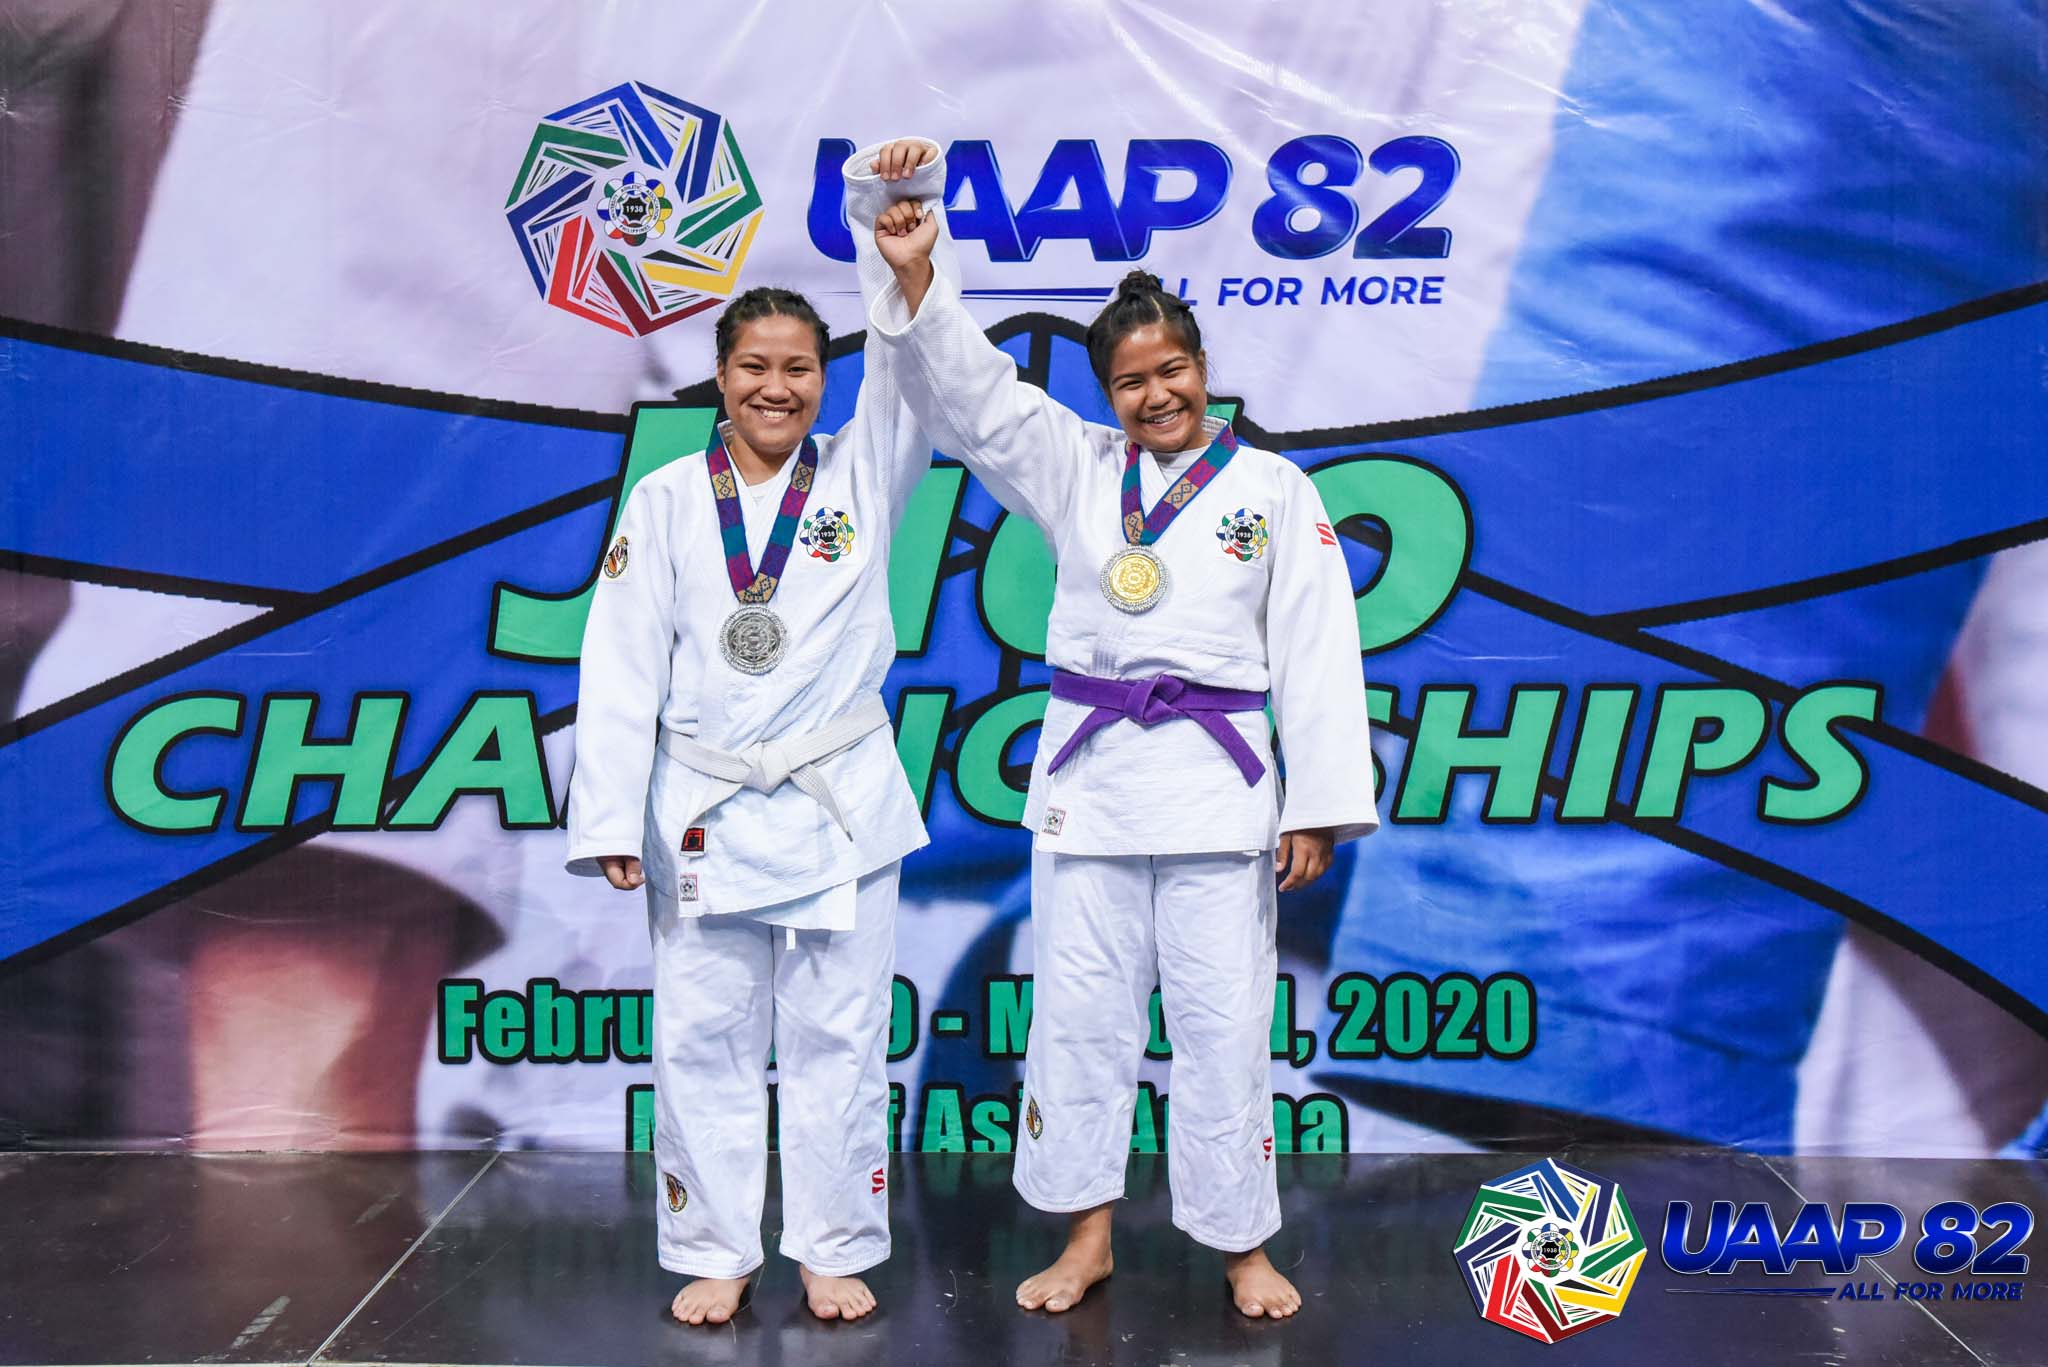 UAAP82-JUDO-JRS-GIRLS-7TH-PHOTO-78KG-1-QUIMBA-LEA-UST-2-QUIMBA-LORENZ-UST Donaire, Saria lead DLSZ to surprising start in UAAP 82 HS Judo as Quimba sisters give UST early lead ADMU DLSU FEU Judo News UAAP UE UST  - philippine sports news